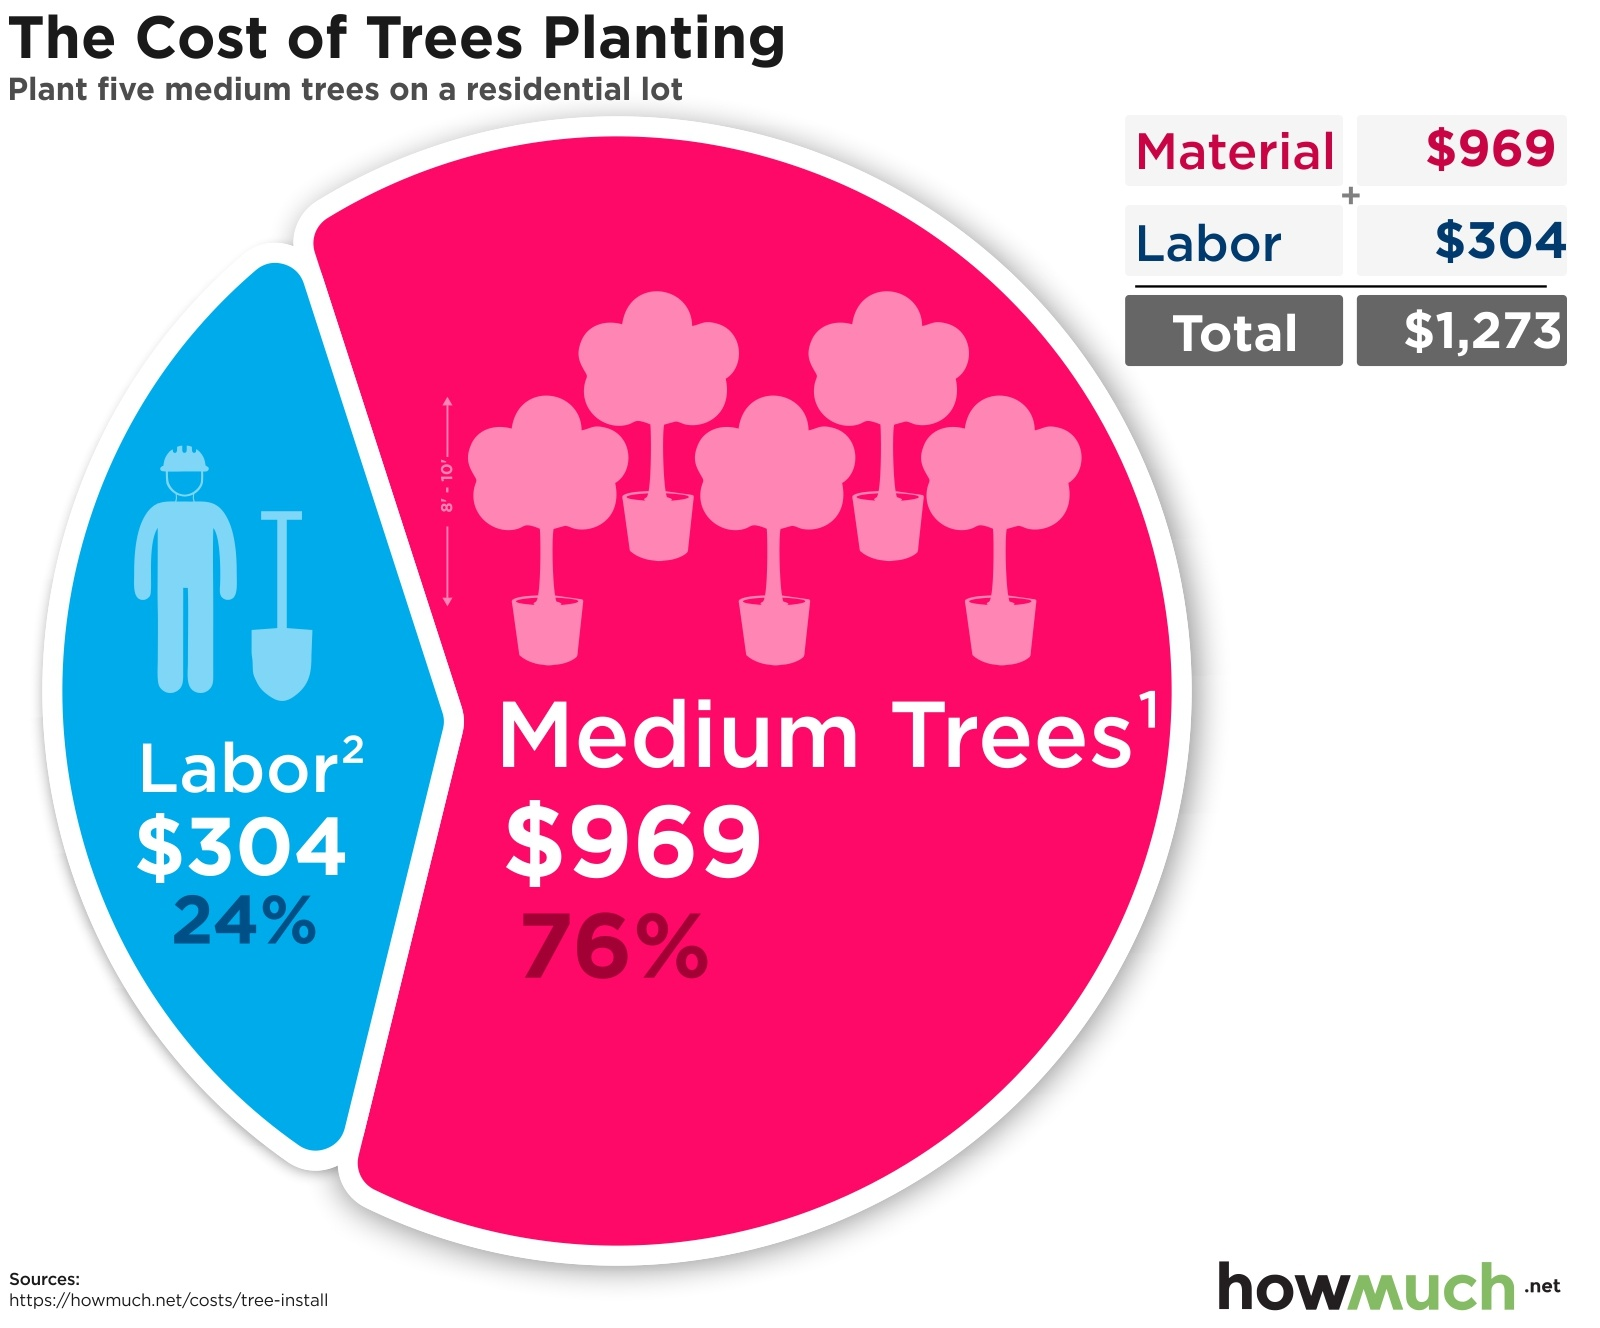 The Cost of Trees Planting